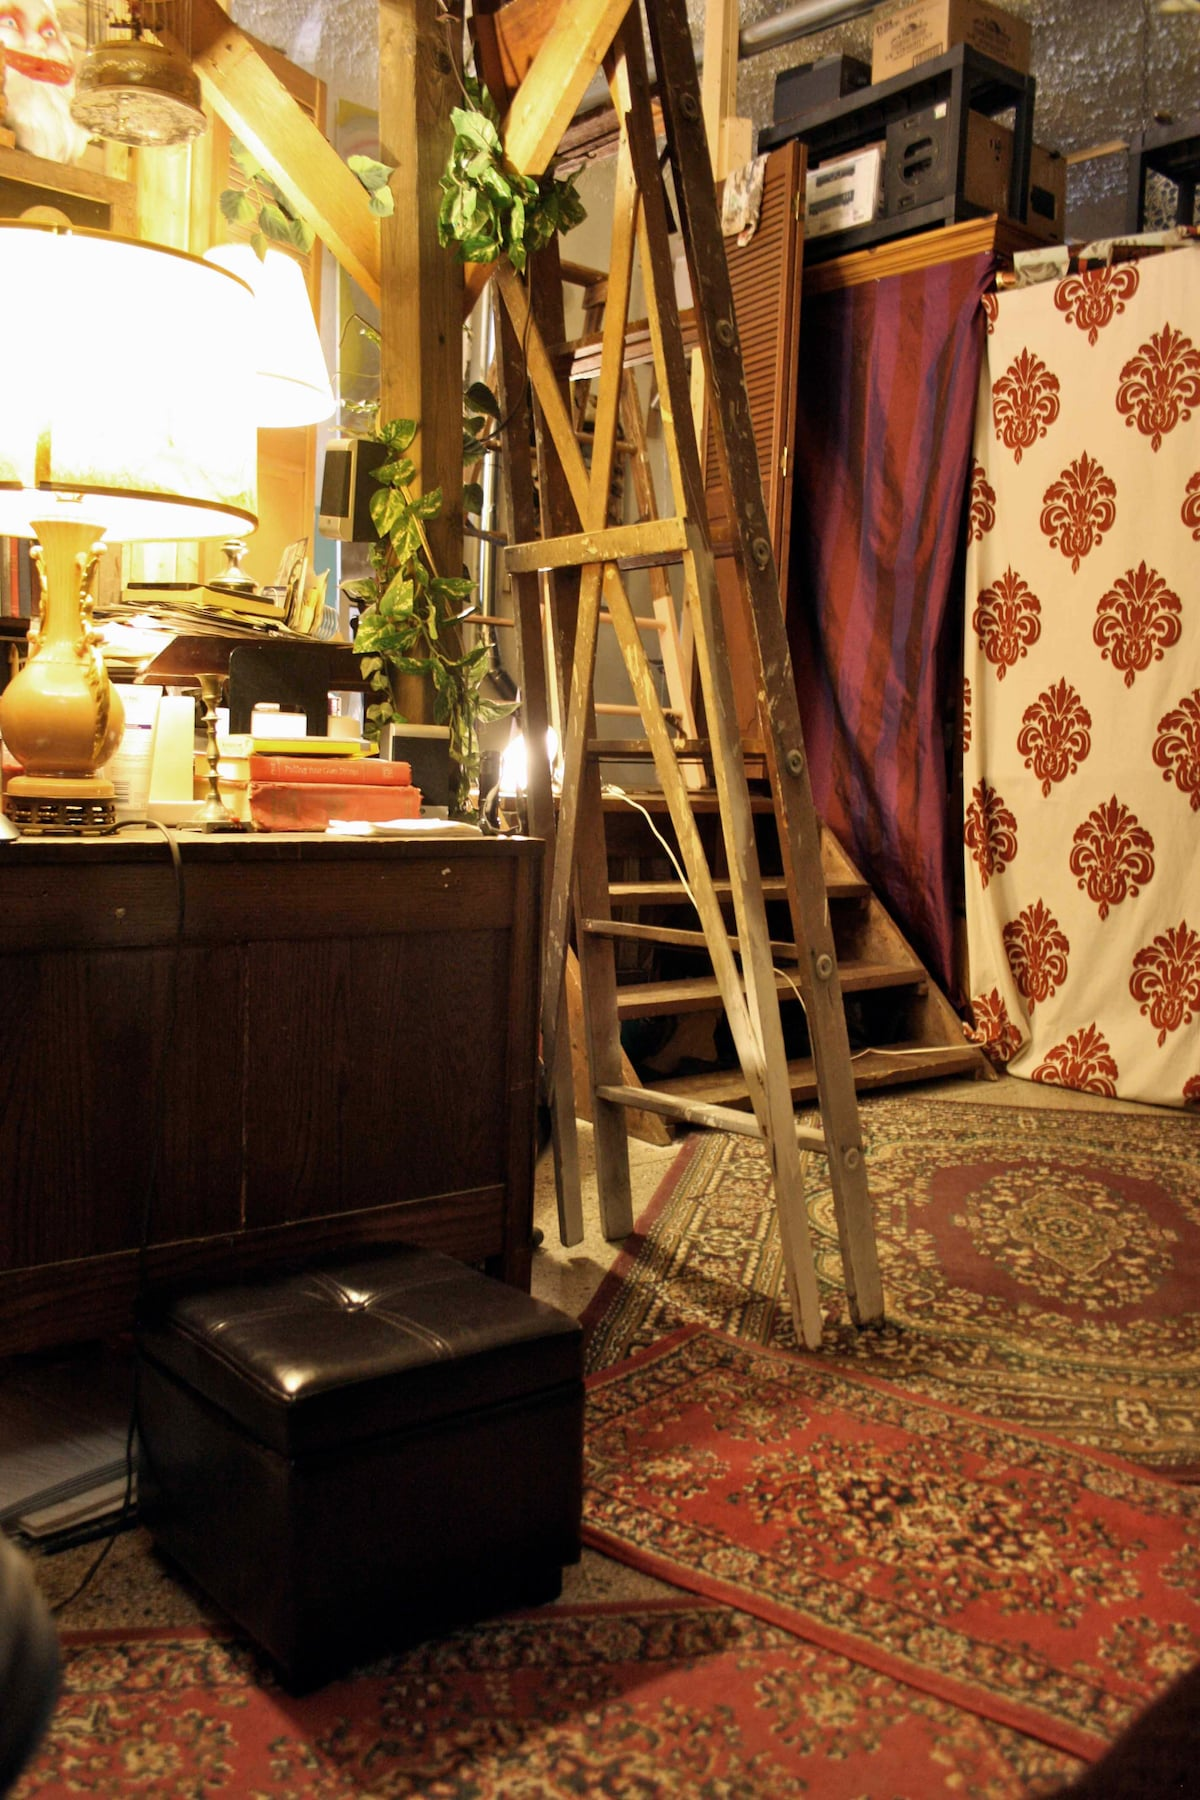 ladder to the lofted queen size bed